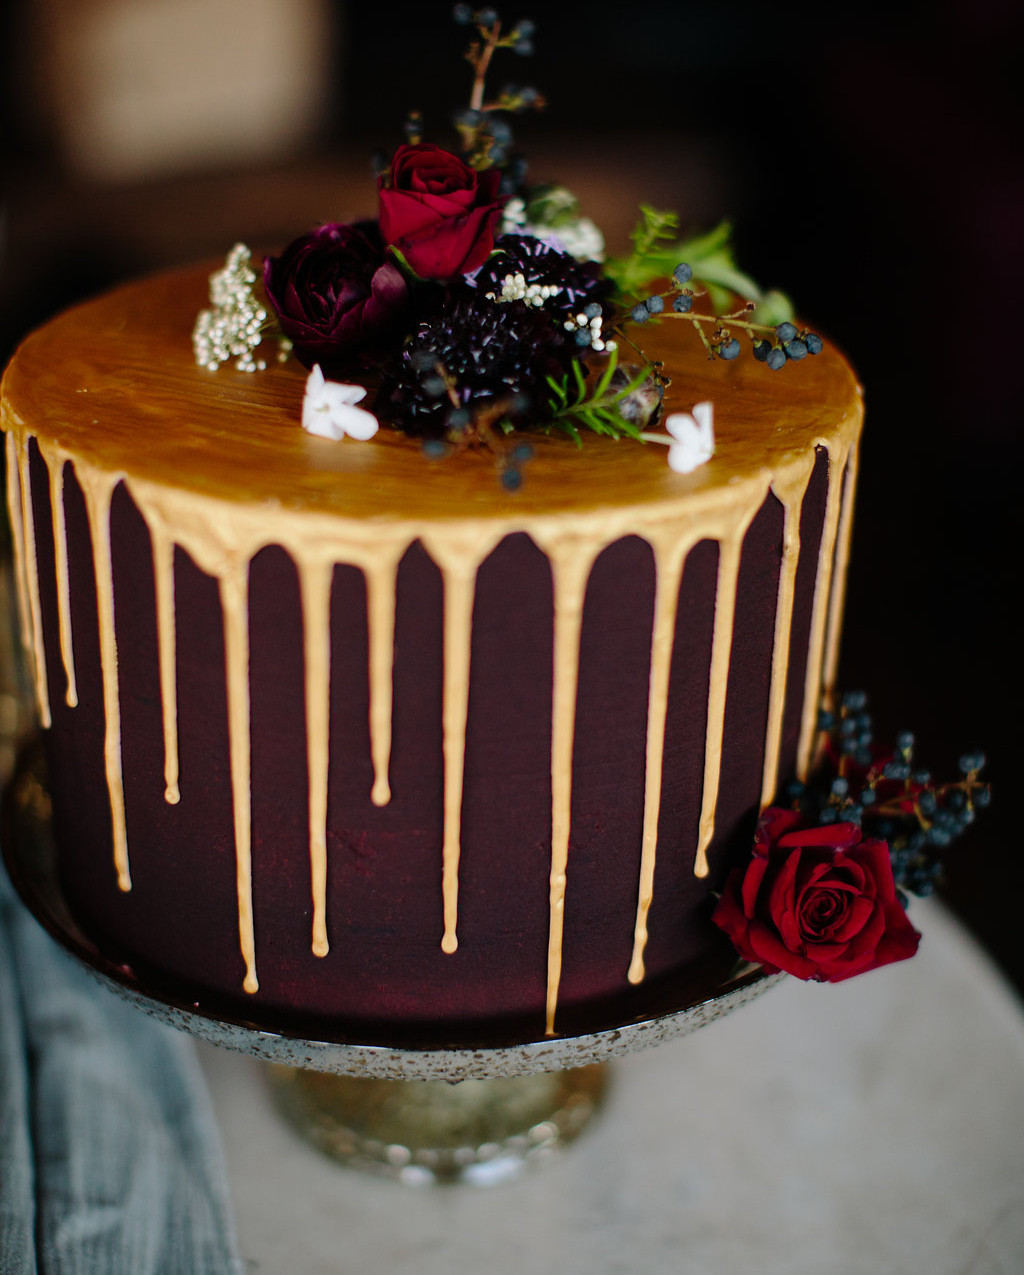 A-Floral-Affair-1864-Tavern-Styled-Shoot-Dark-Cowgirl-Scott-Sikora-Photography-Cake-Cow-Skull (5)